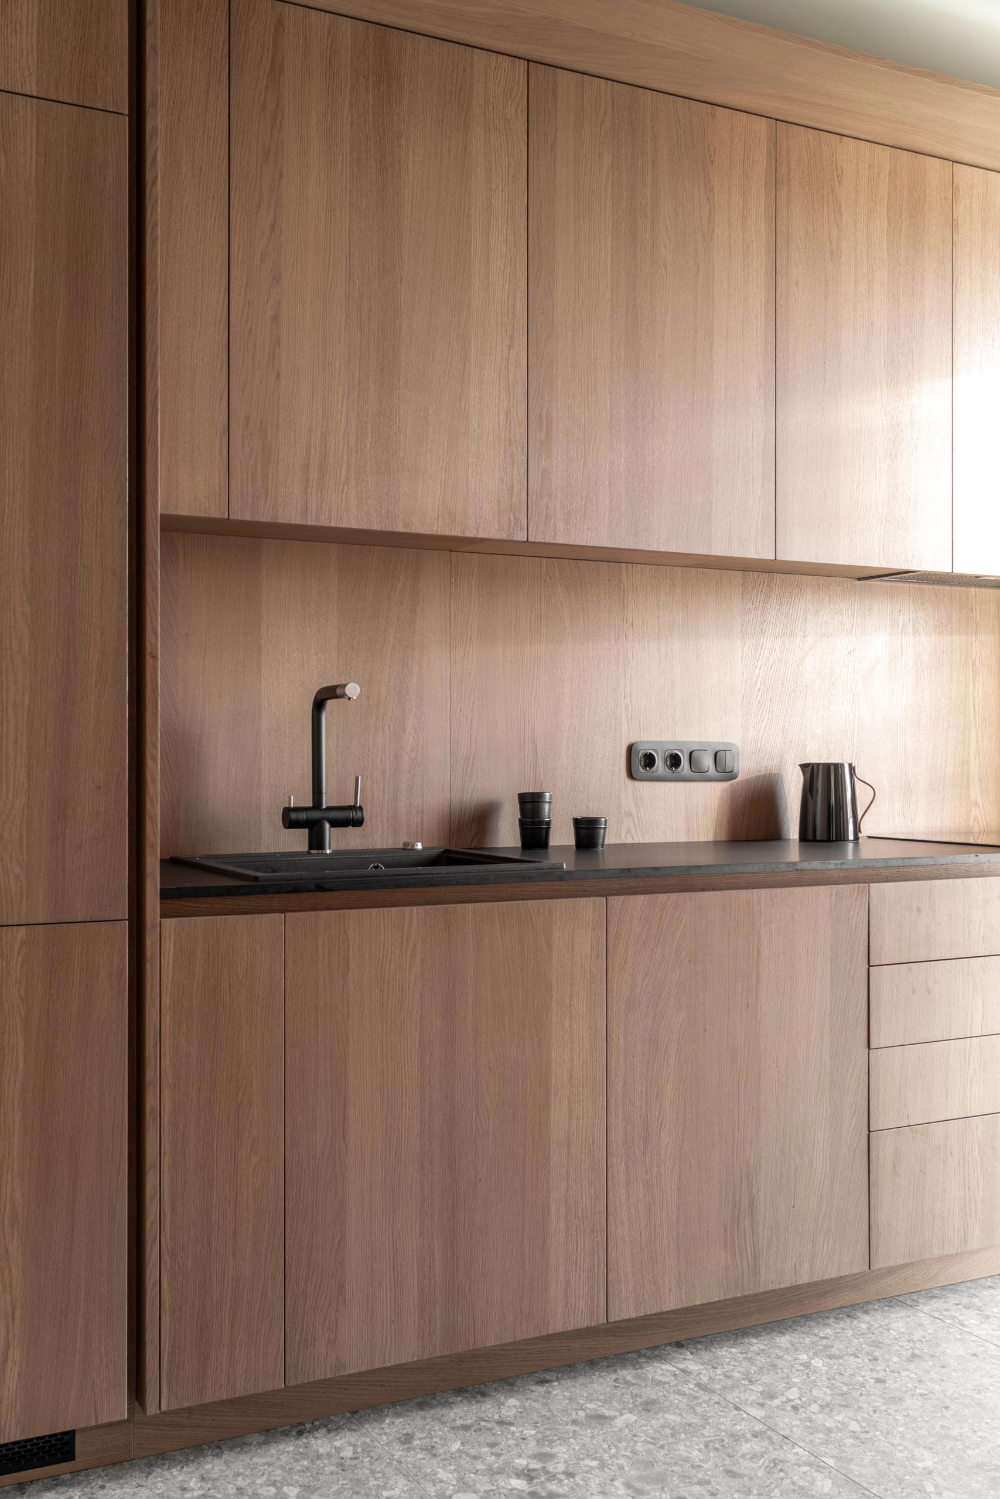 Wood Cabinets Without Hardware Are A Consistent Feature Throughout This Apartment In 2020 Wood Cabinets Modern Wood Kitchen Built In Furniture